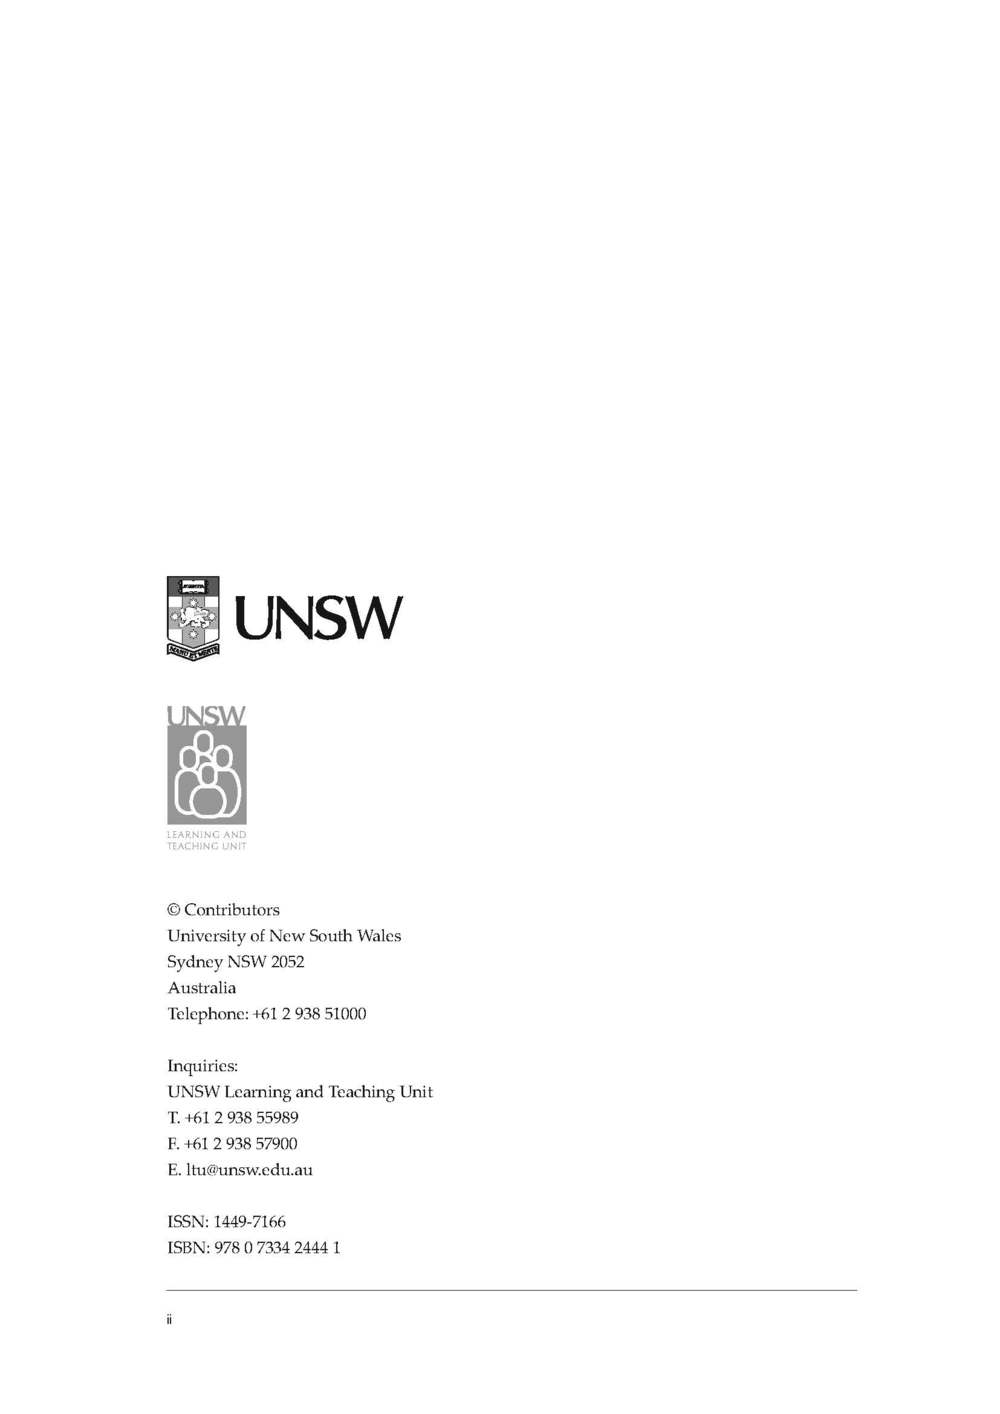 UNSW_Compendium_Issue4_Feb07_Page_2.jpg